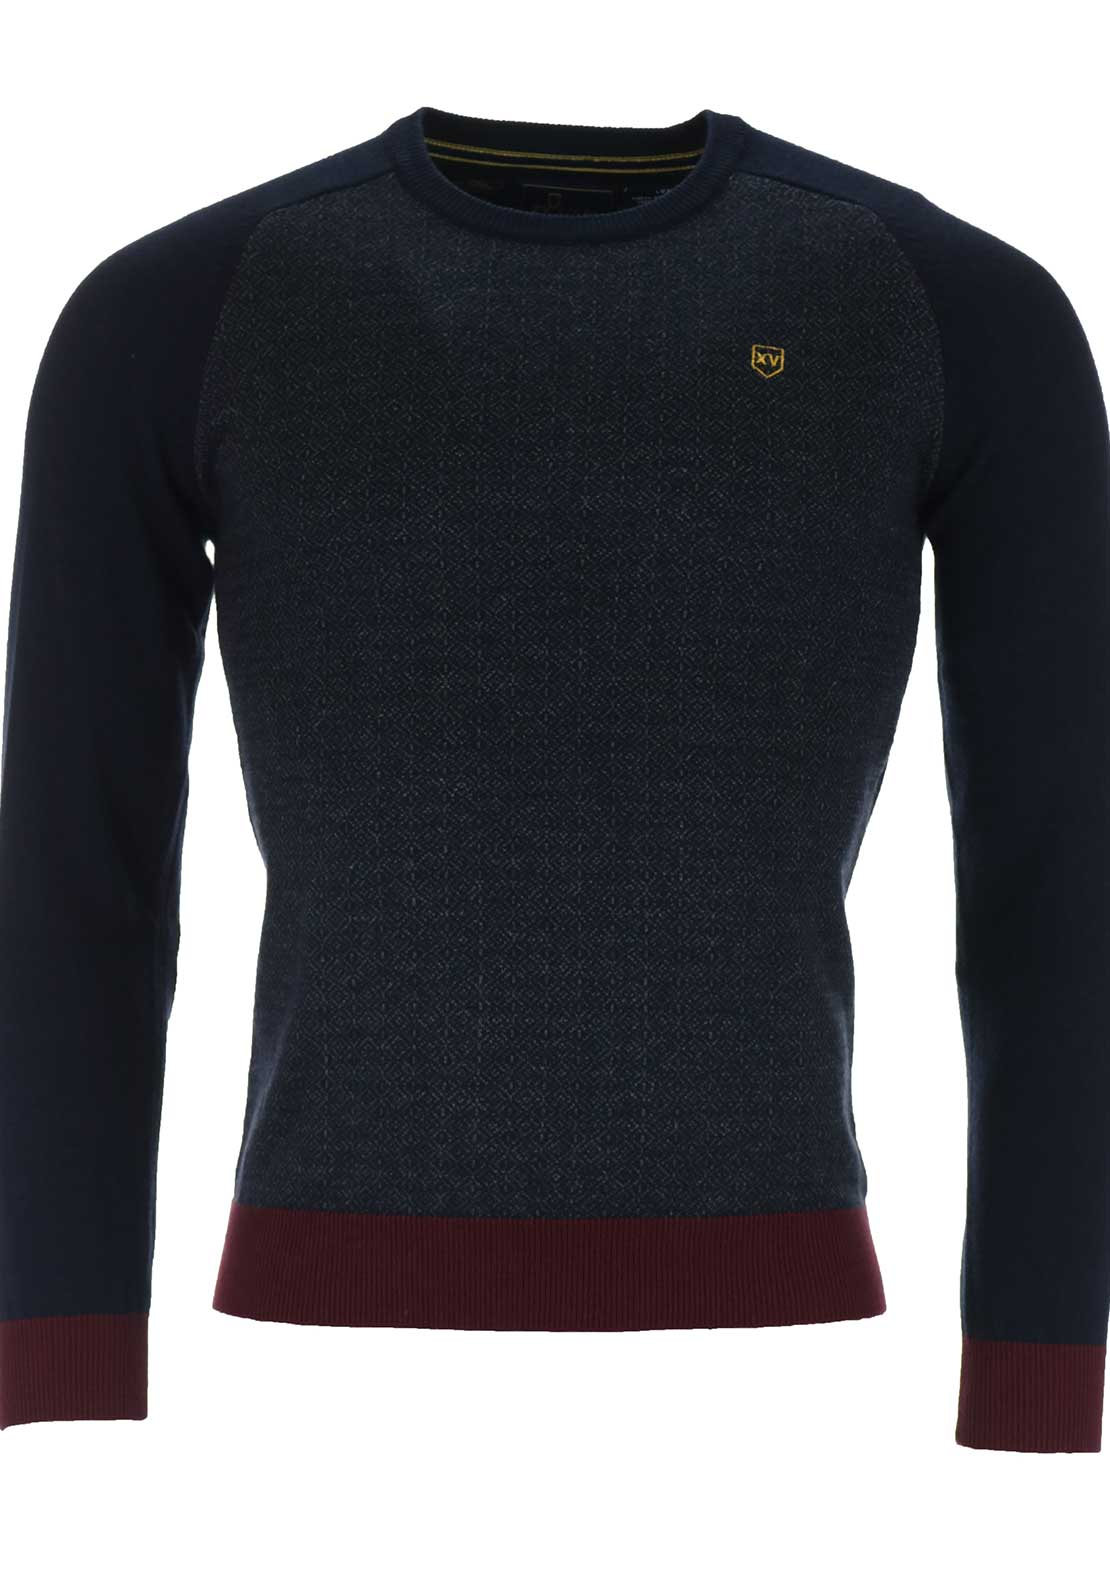 XV Kings Tommy Bowe Avoca Beach Cotton Knit, Grey Mayhem